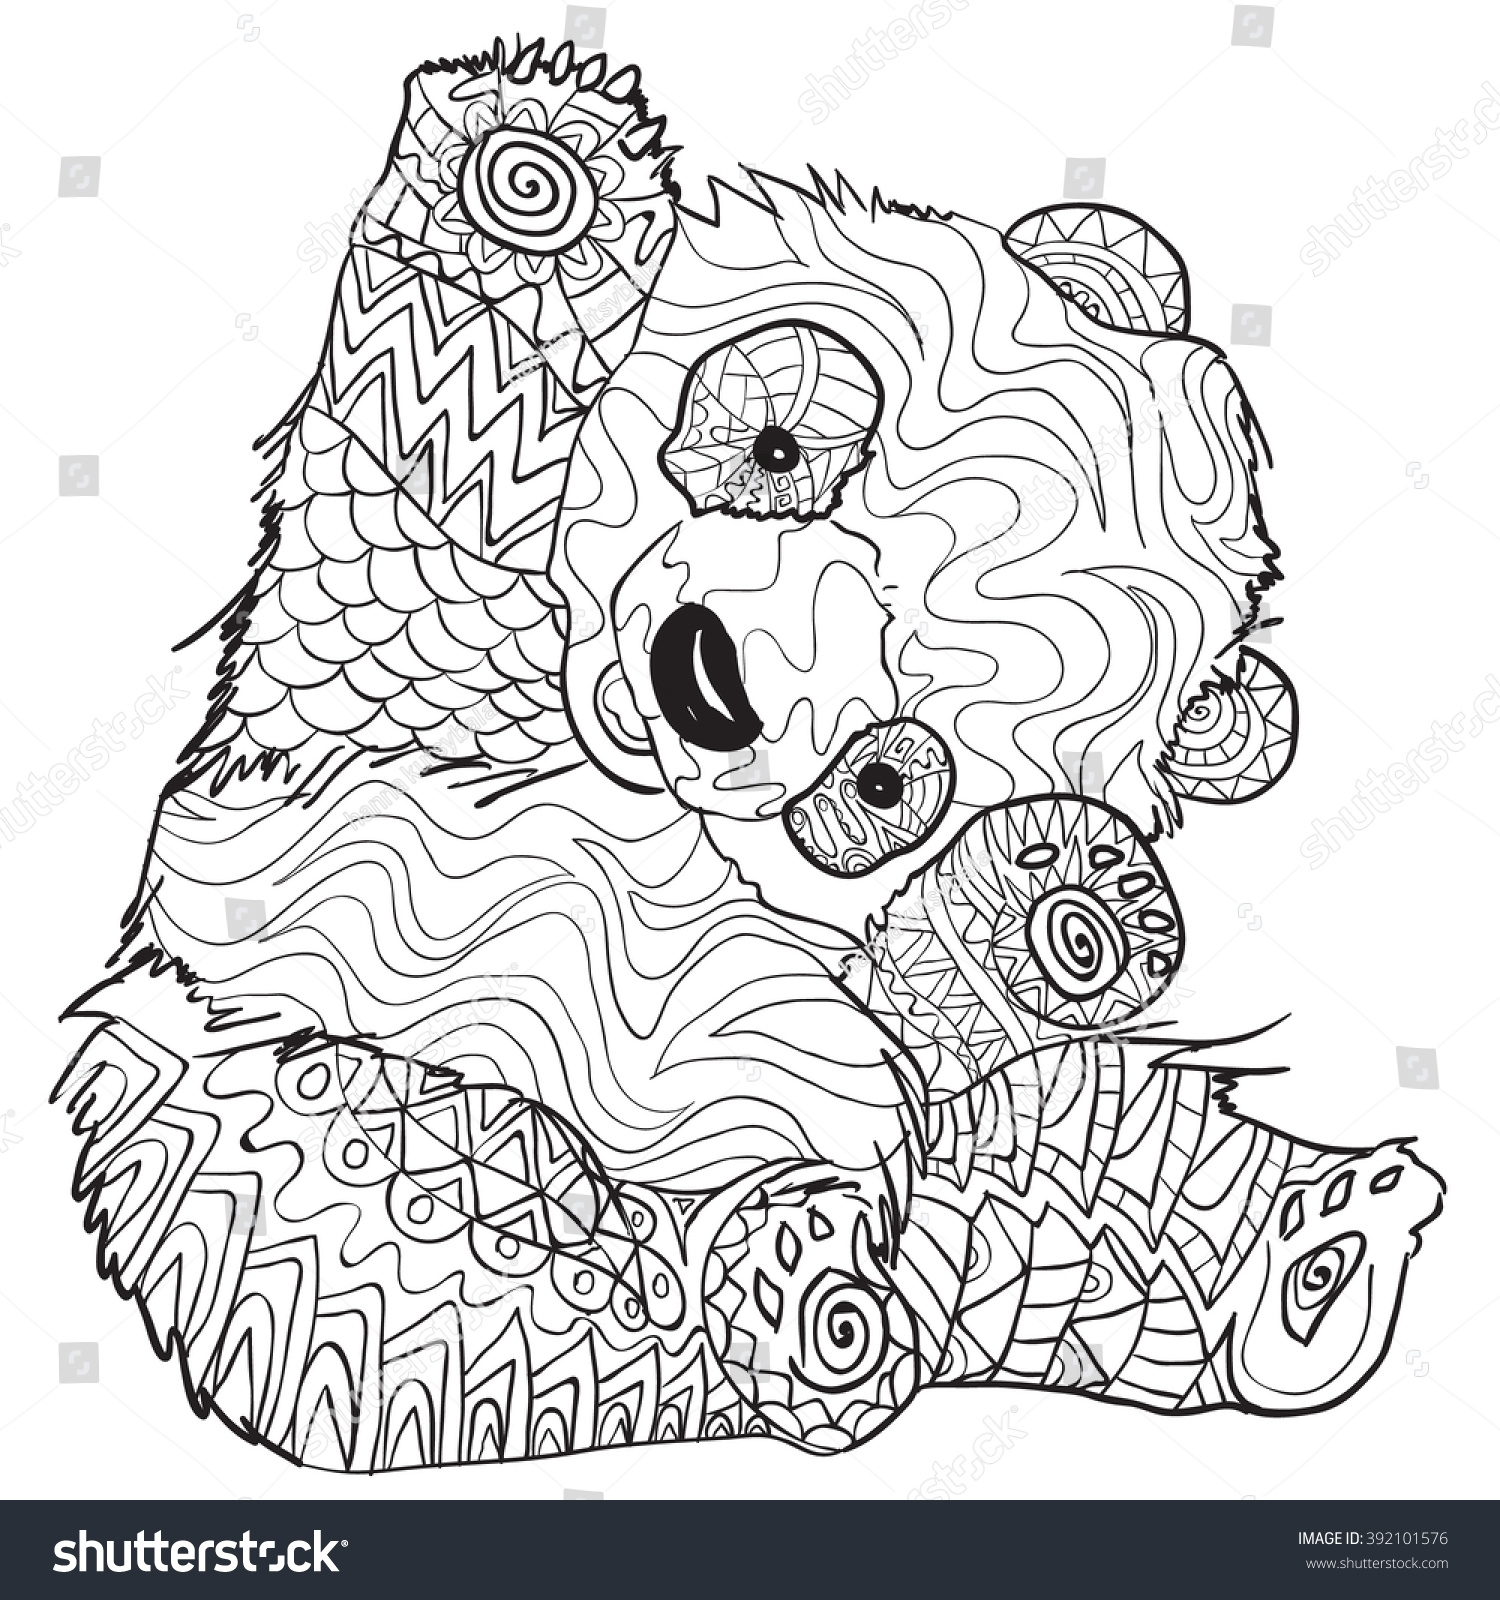 nicky ricky dicky and dawn coloring pages Download-nicky ricky dicky and dawn coloring pages 24m adult coloring pages pandas 8 g hand drawn coloring pages panda illustration stock 12-p